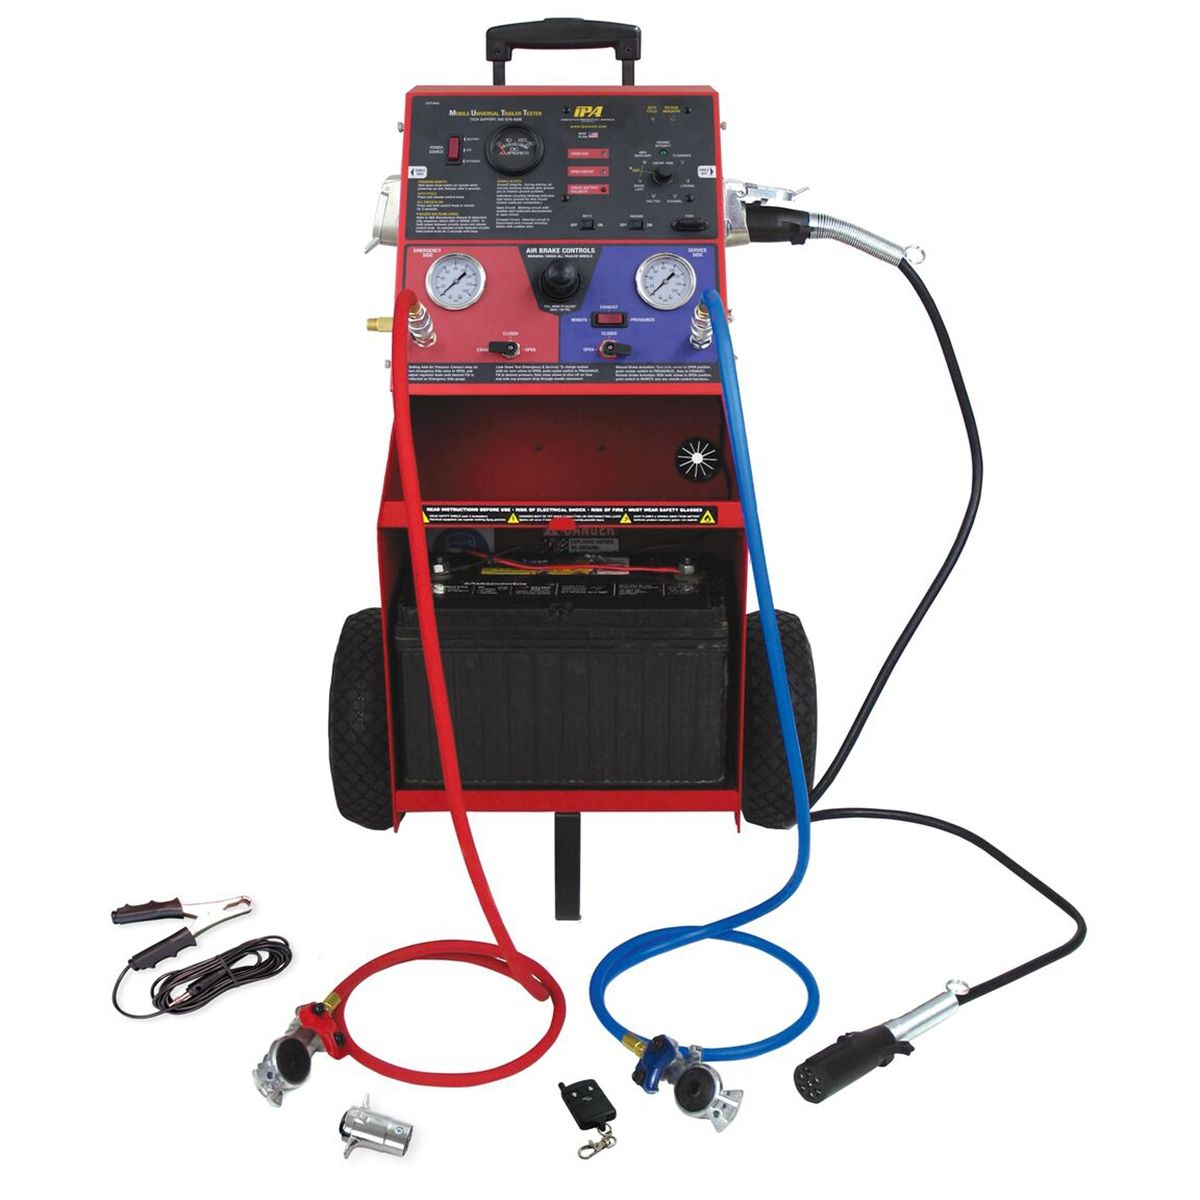 Trailer Harness Tester Auto Electrical Wiring Diagram Hopkins Towingr 48655 4wire Flat With Led Lights Abs Automotive Bearings